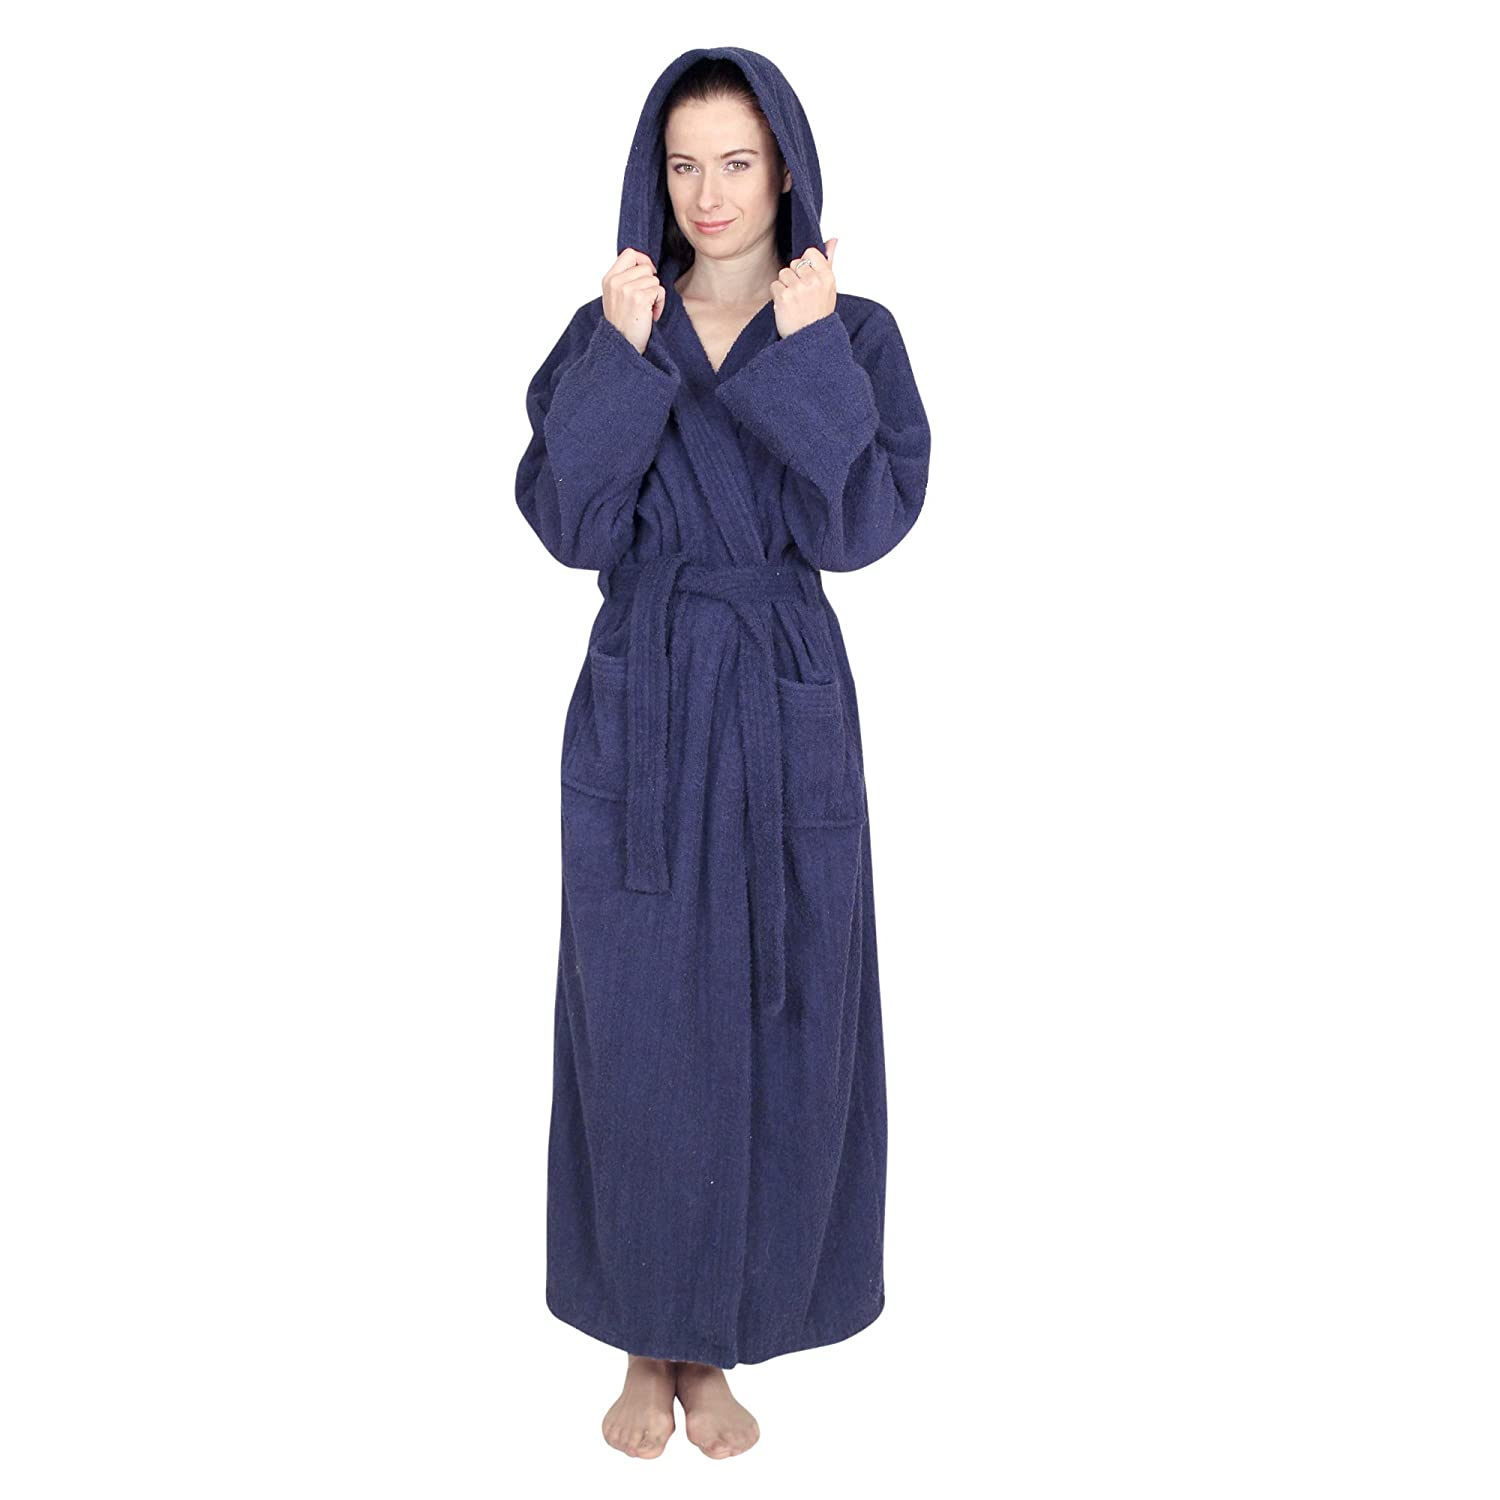 defe285cf5 NDK New York Women s and Men s Hooded Terry Cloth Bath Robe - 100% Cotton  at Amazon Women s Clothing store